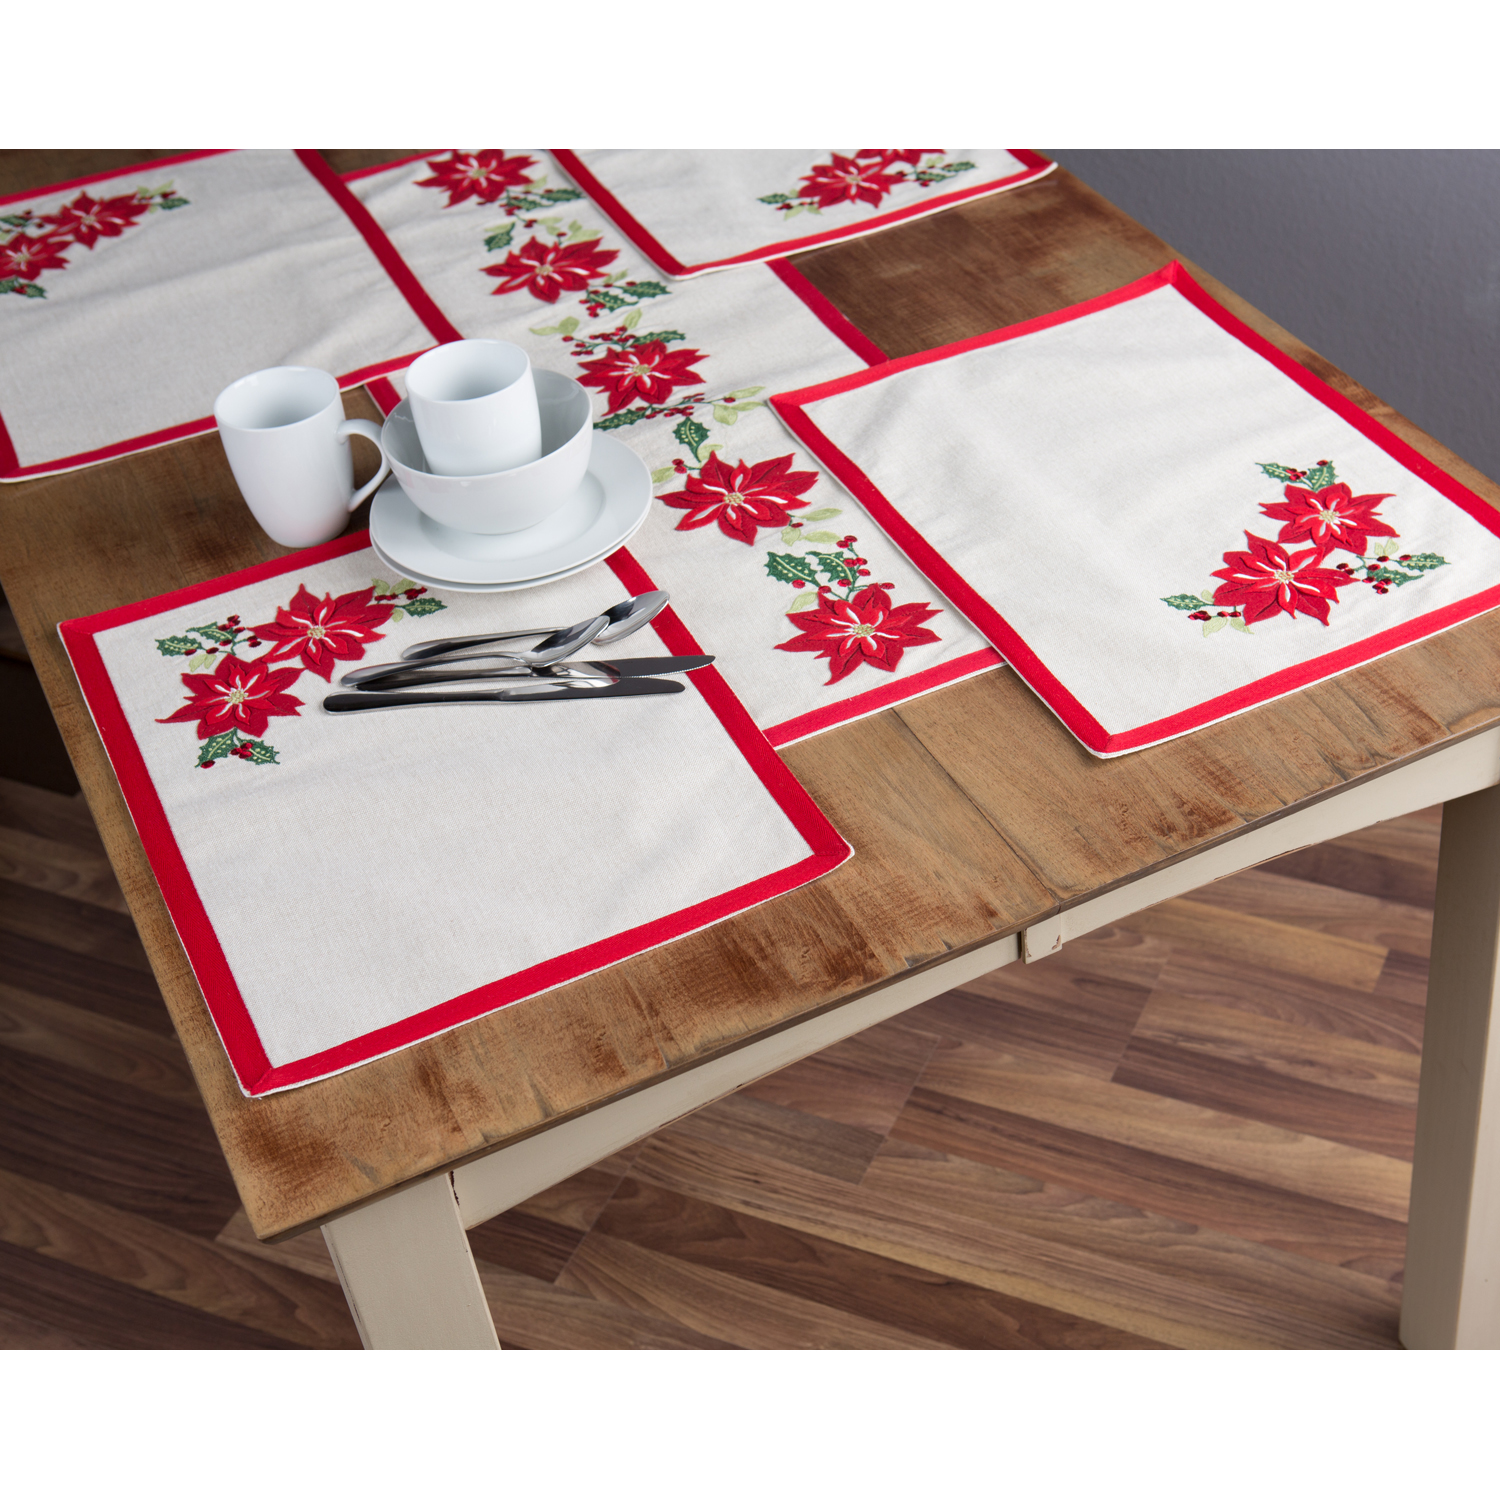 Better Homes U0026 Gardens 5 Piece Holiday Placemat And Table Runner Set,  Poinsettia Embroidery,